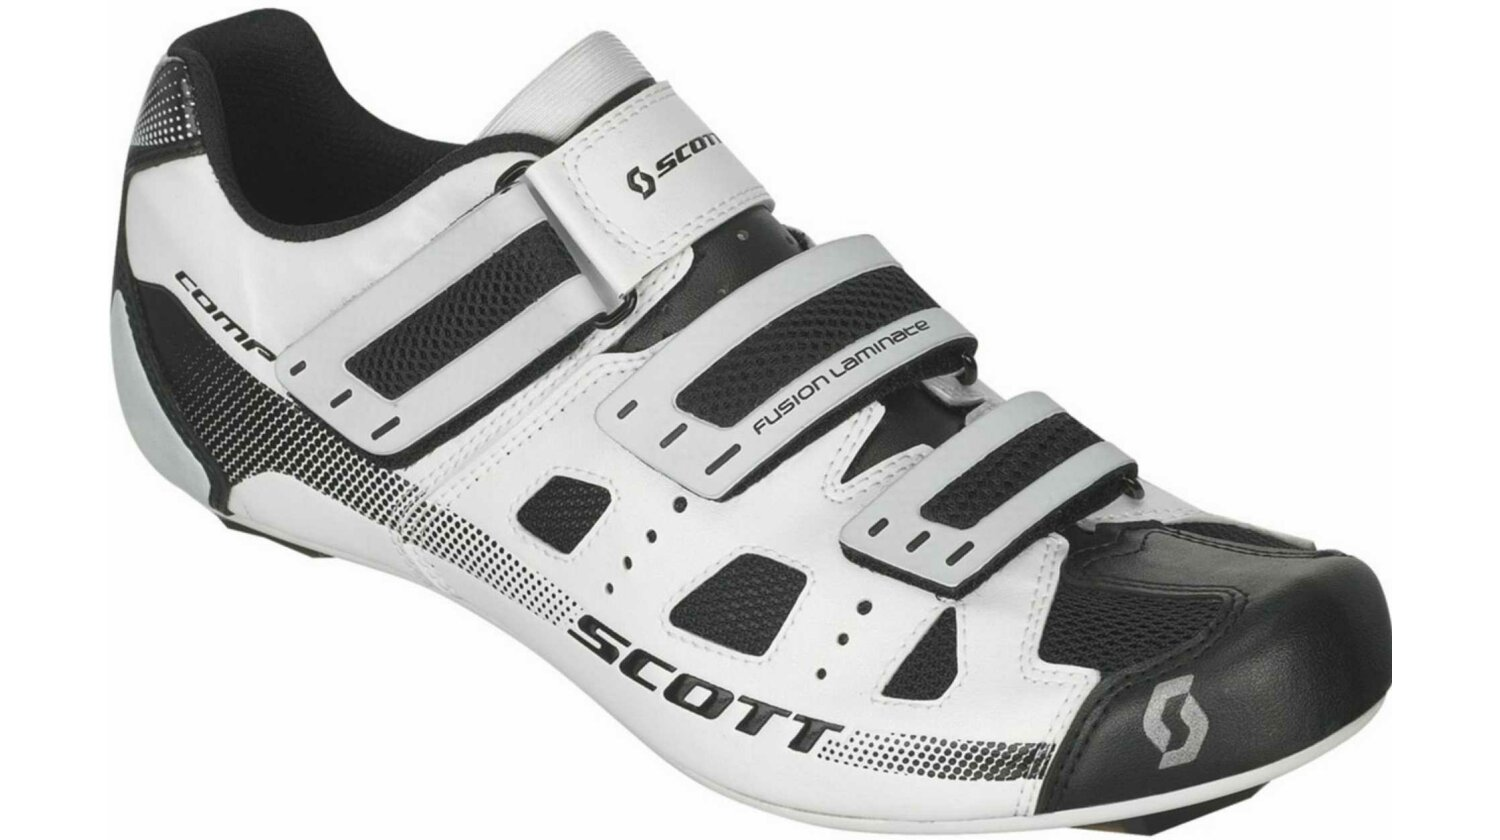 Scott Road Comp Schuh white/black 48